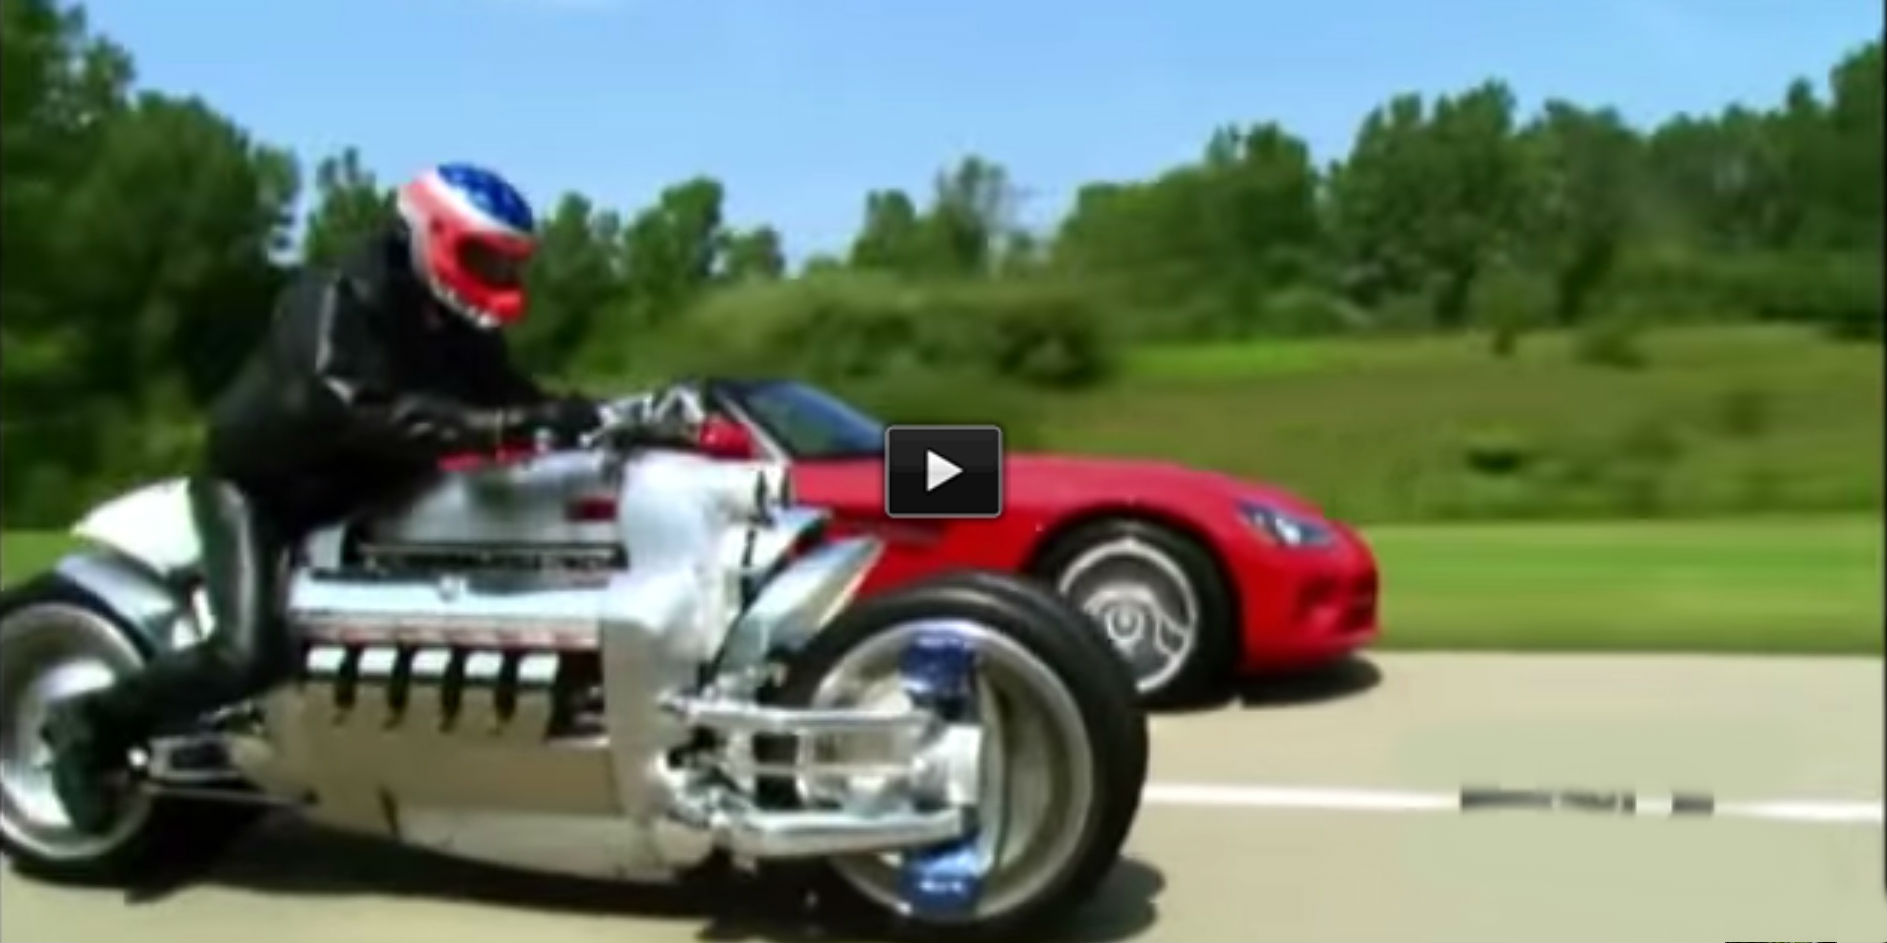 Dodge Tomahawk vs Dodge Viper! + Test Drive VIDEO! This Motorcycle is Awesome!